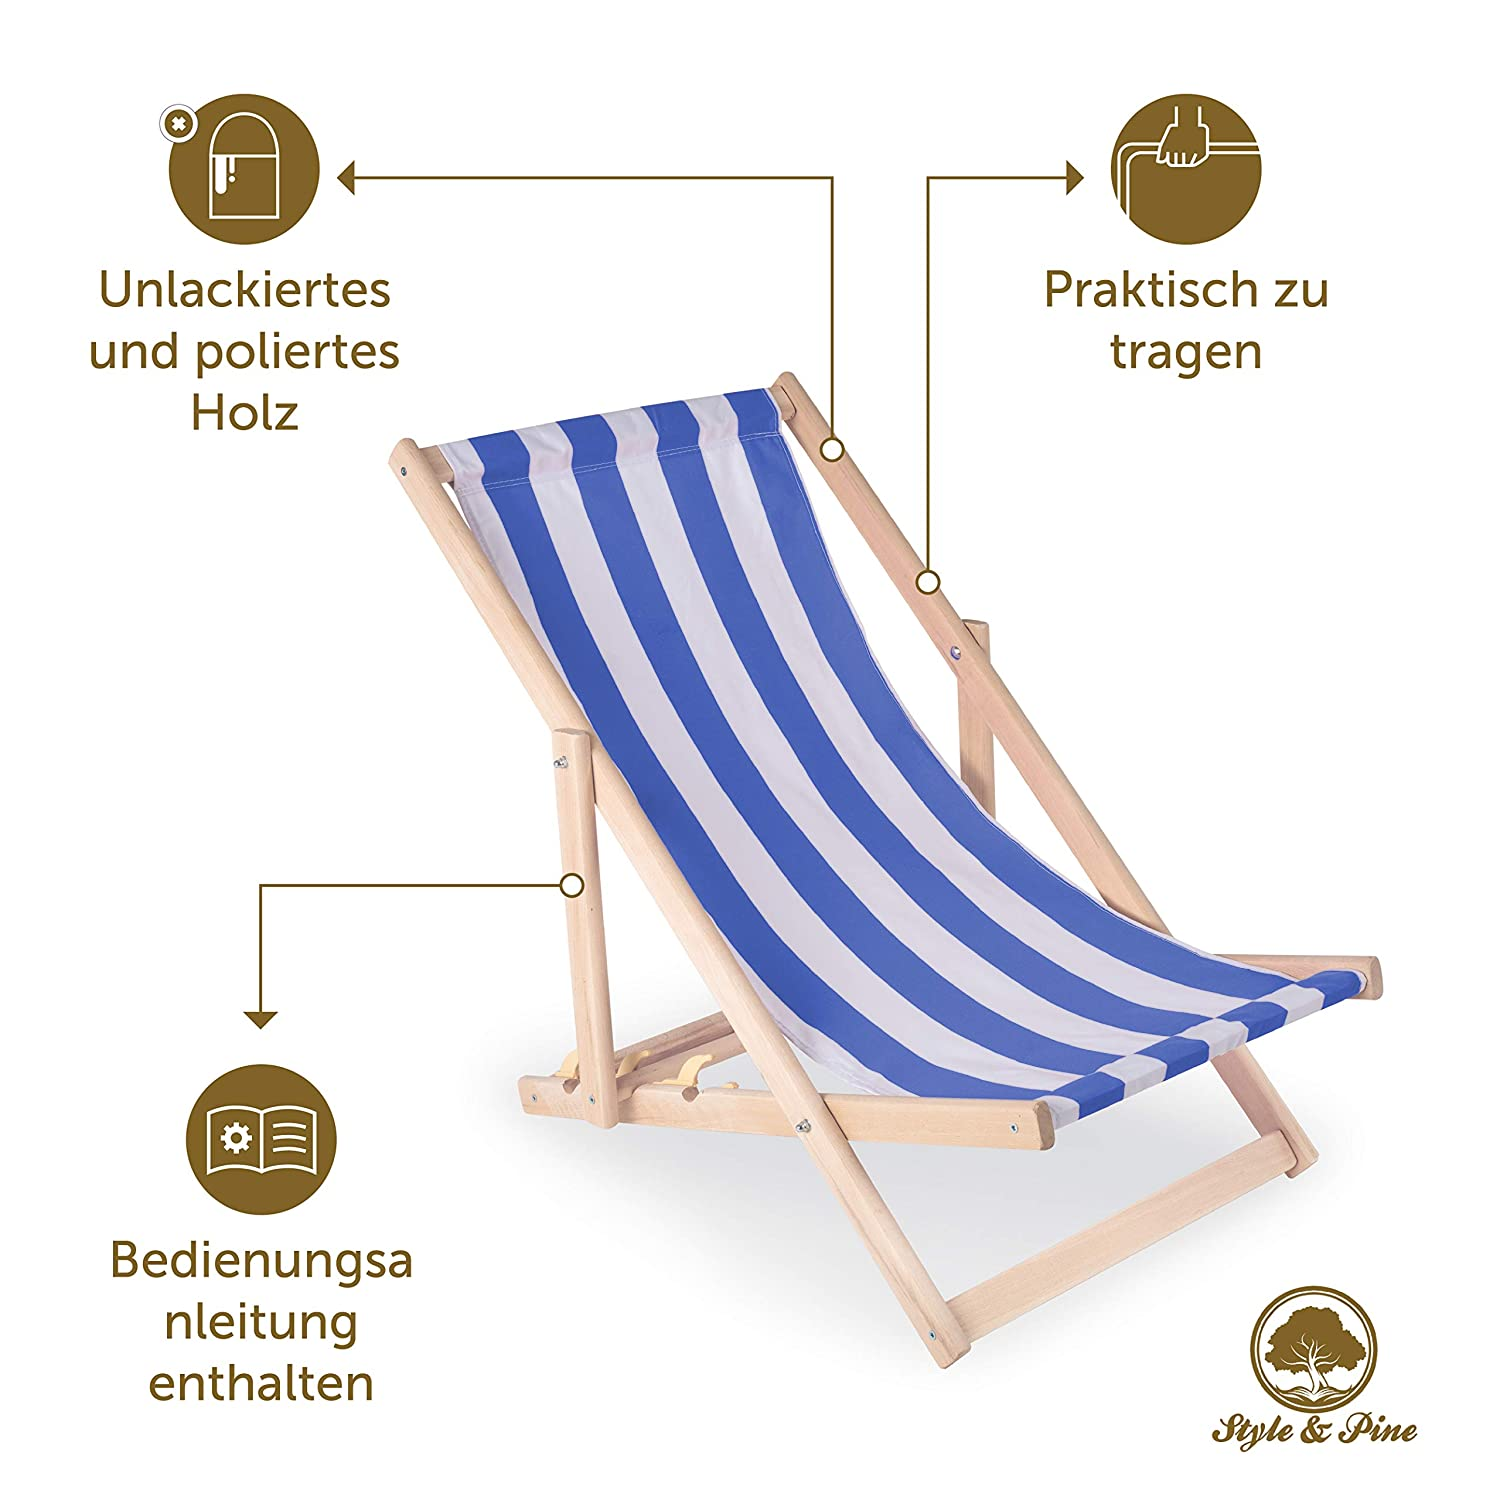 Sunlounger Deck Chairs Folding wood Traditional Garden Beach Deckchairs Outdoor Leisure